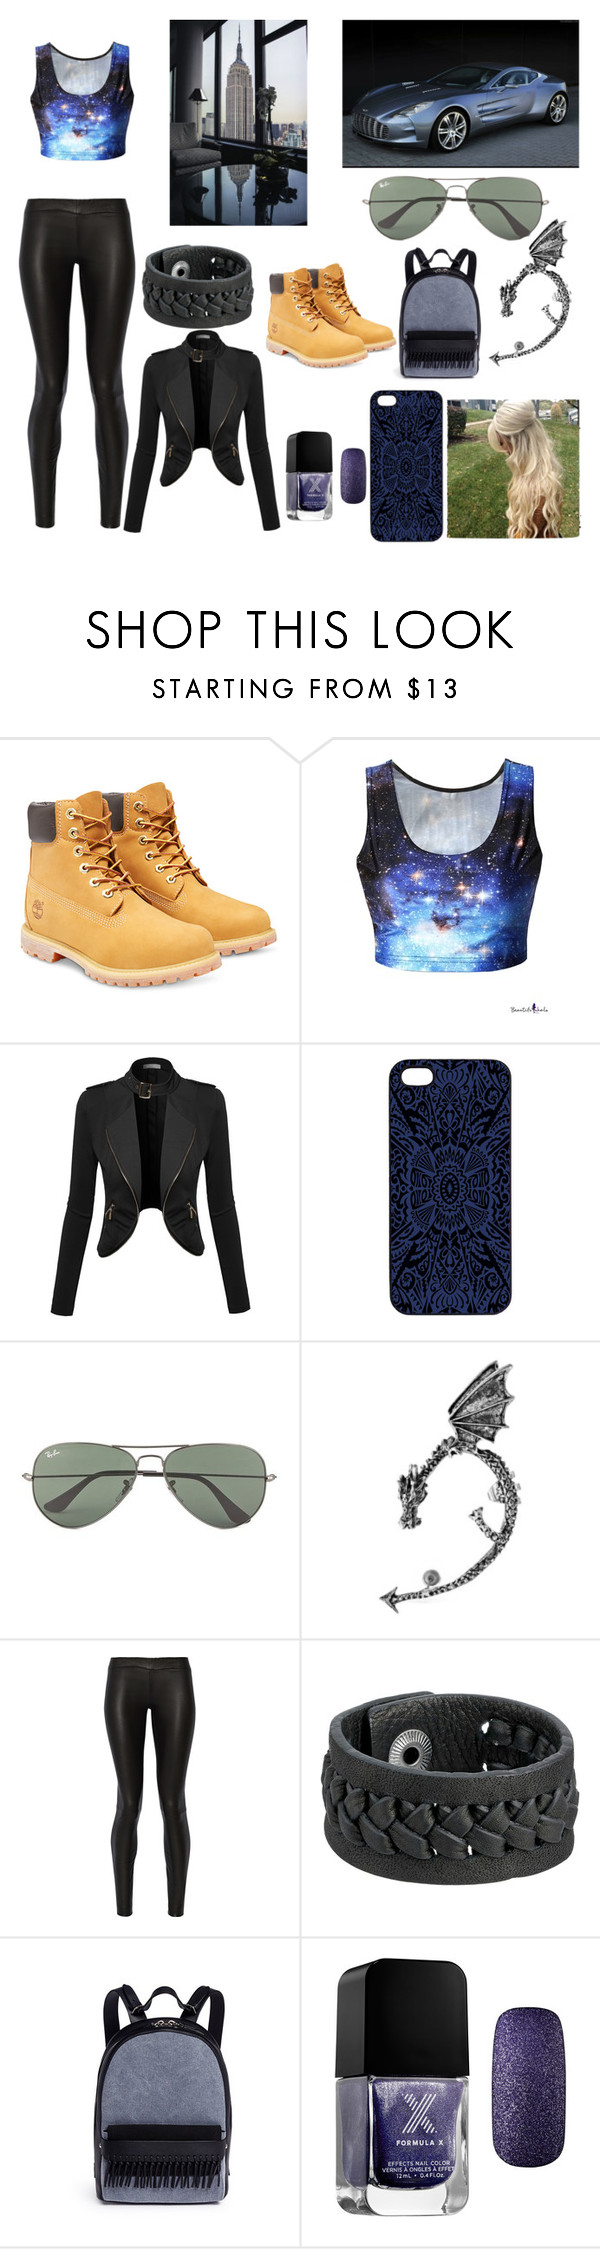 """Untitled #22"" by vanessa241201 ❤ liked on Polyvore featuring Timberland, Samantha Warren London, Ray-Ban, Bling Jewelry, The Row, Frye, 3.1 Phillip Lim, Formula X, women's clothing and women"